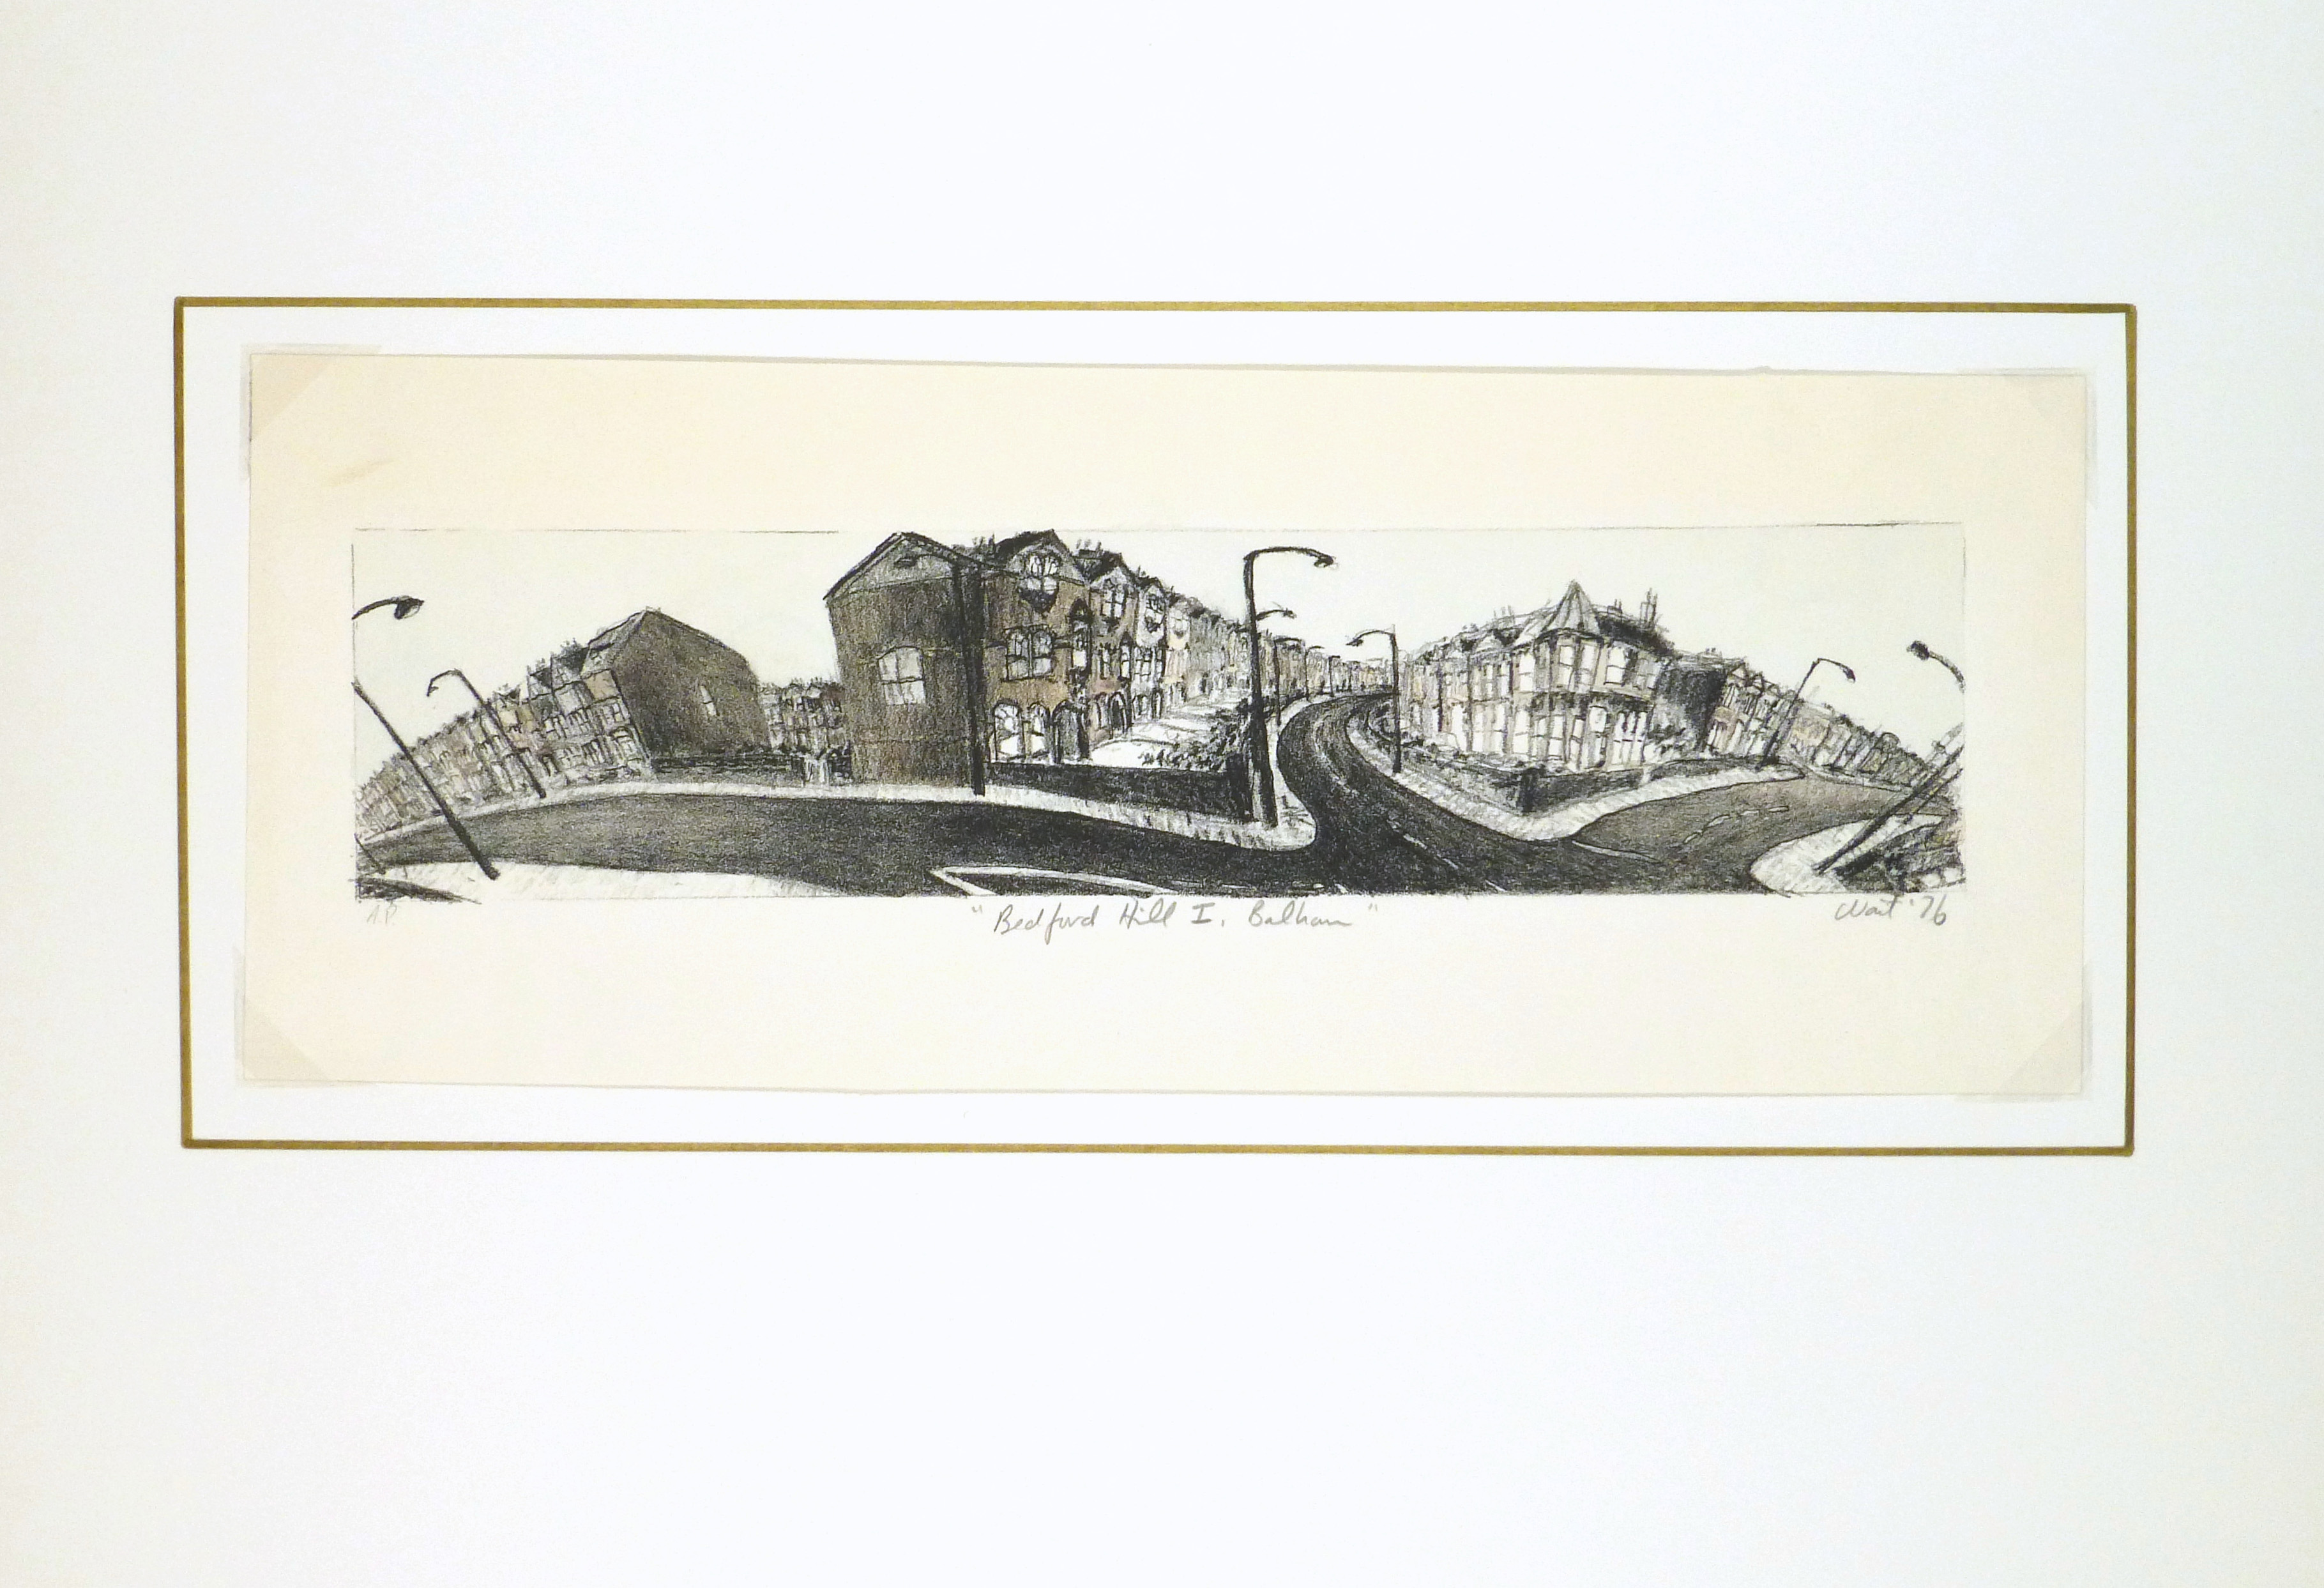 Bedford Hill Print, 1976-matted-8277K